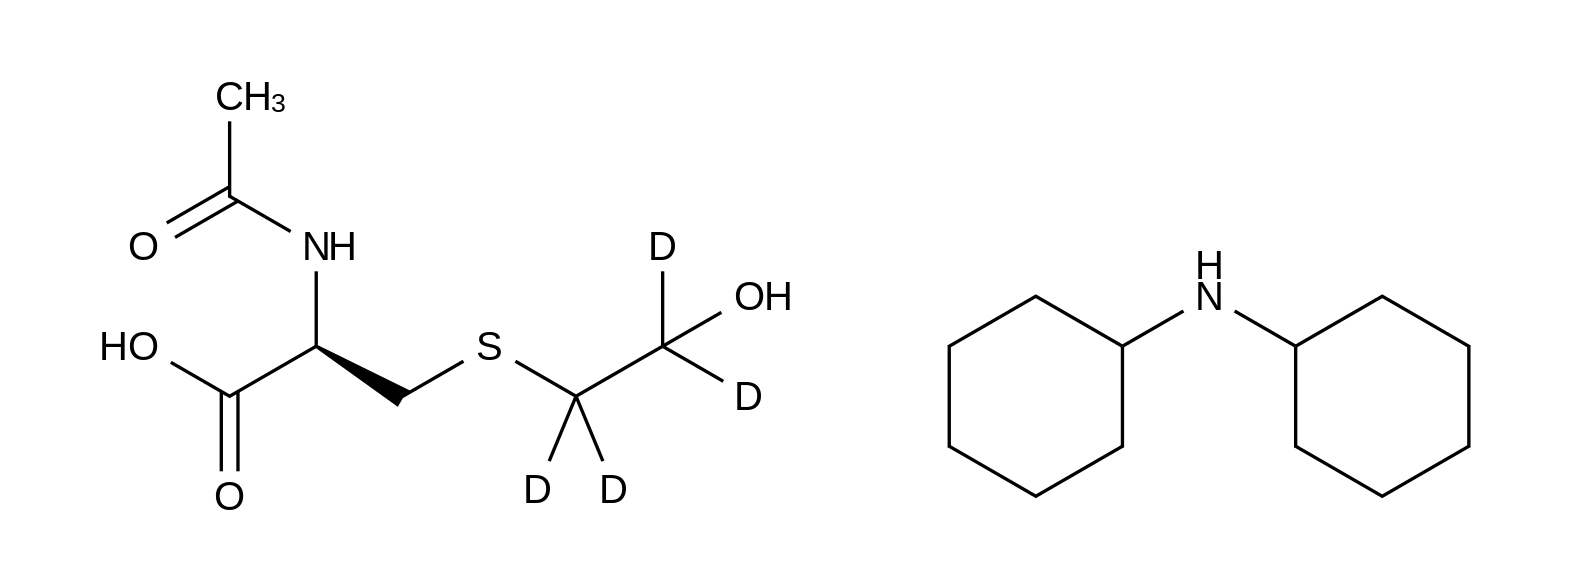 N-Acetyl-S-(2-hydroxyethyl-d<sub>4</sub>)-L-cysteine Dicyclohexylamine Salt